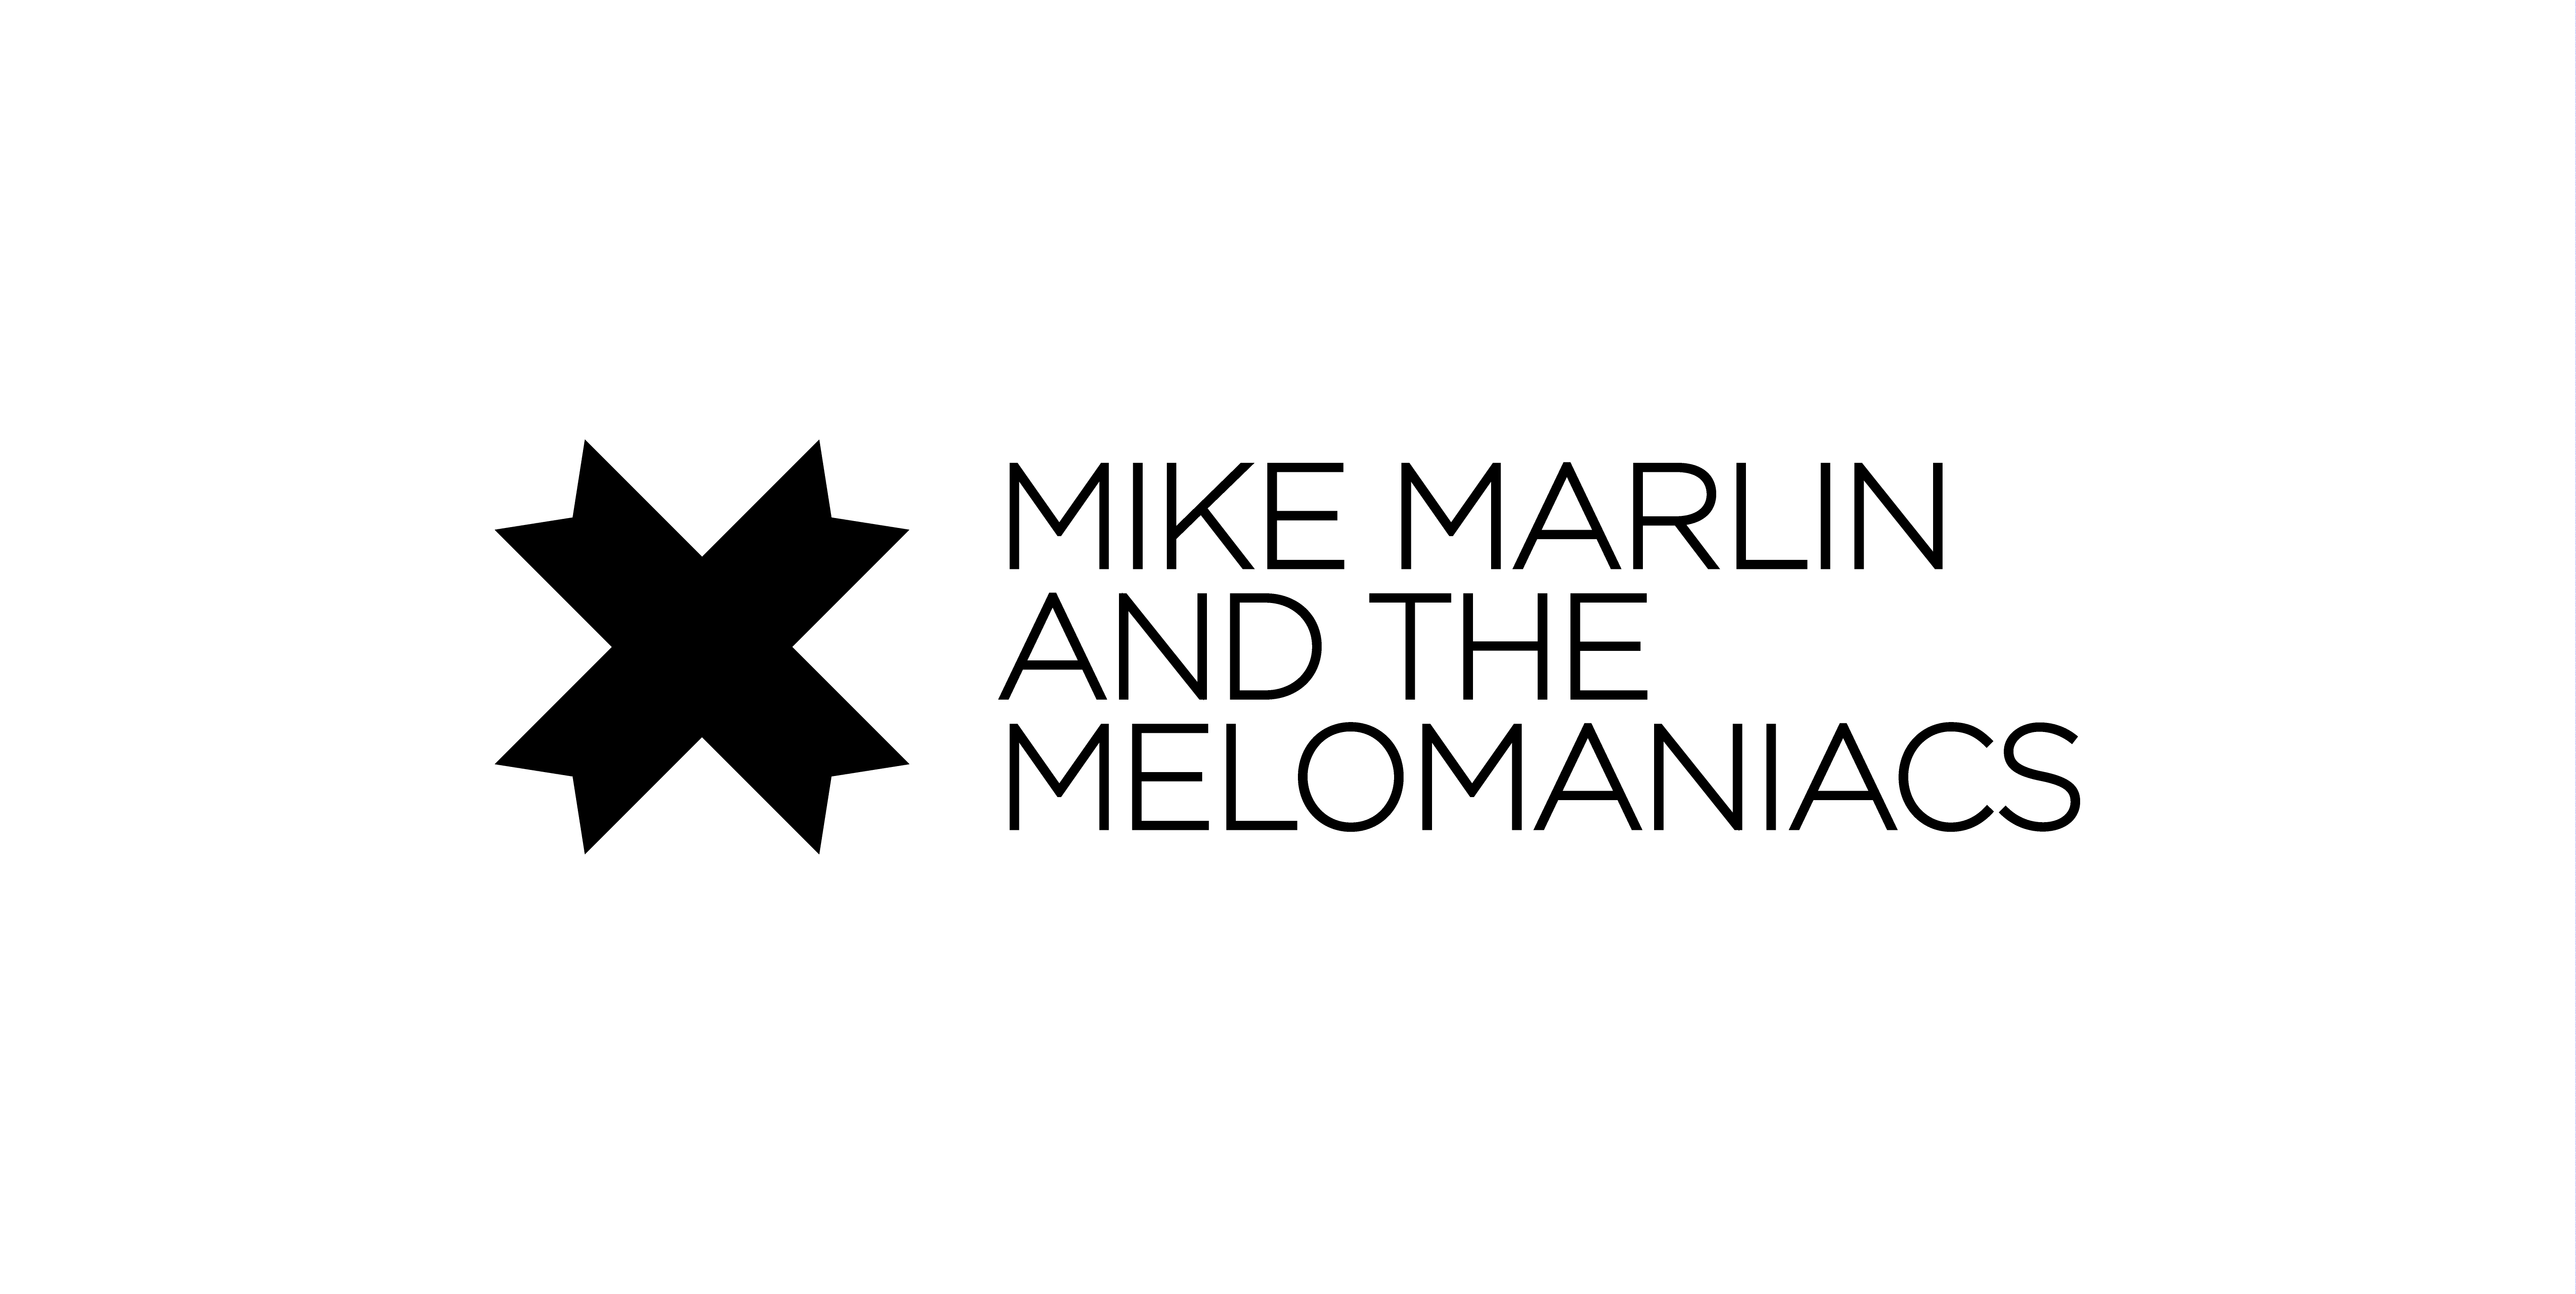 MIKE MARLIN AND THE MELOMANIACS